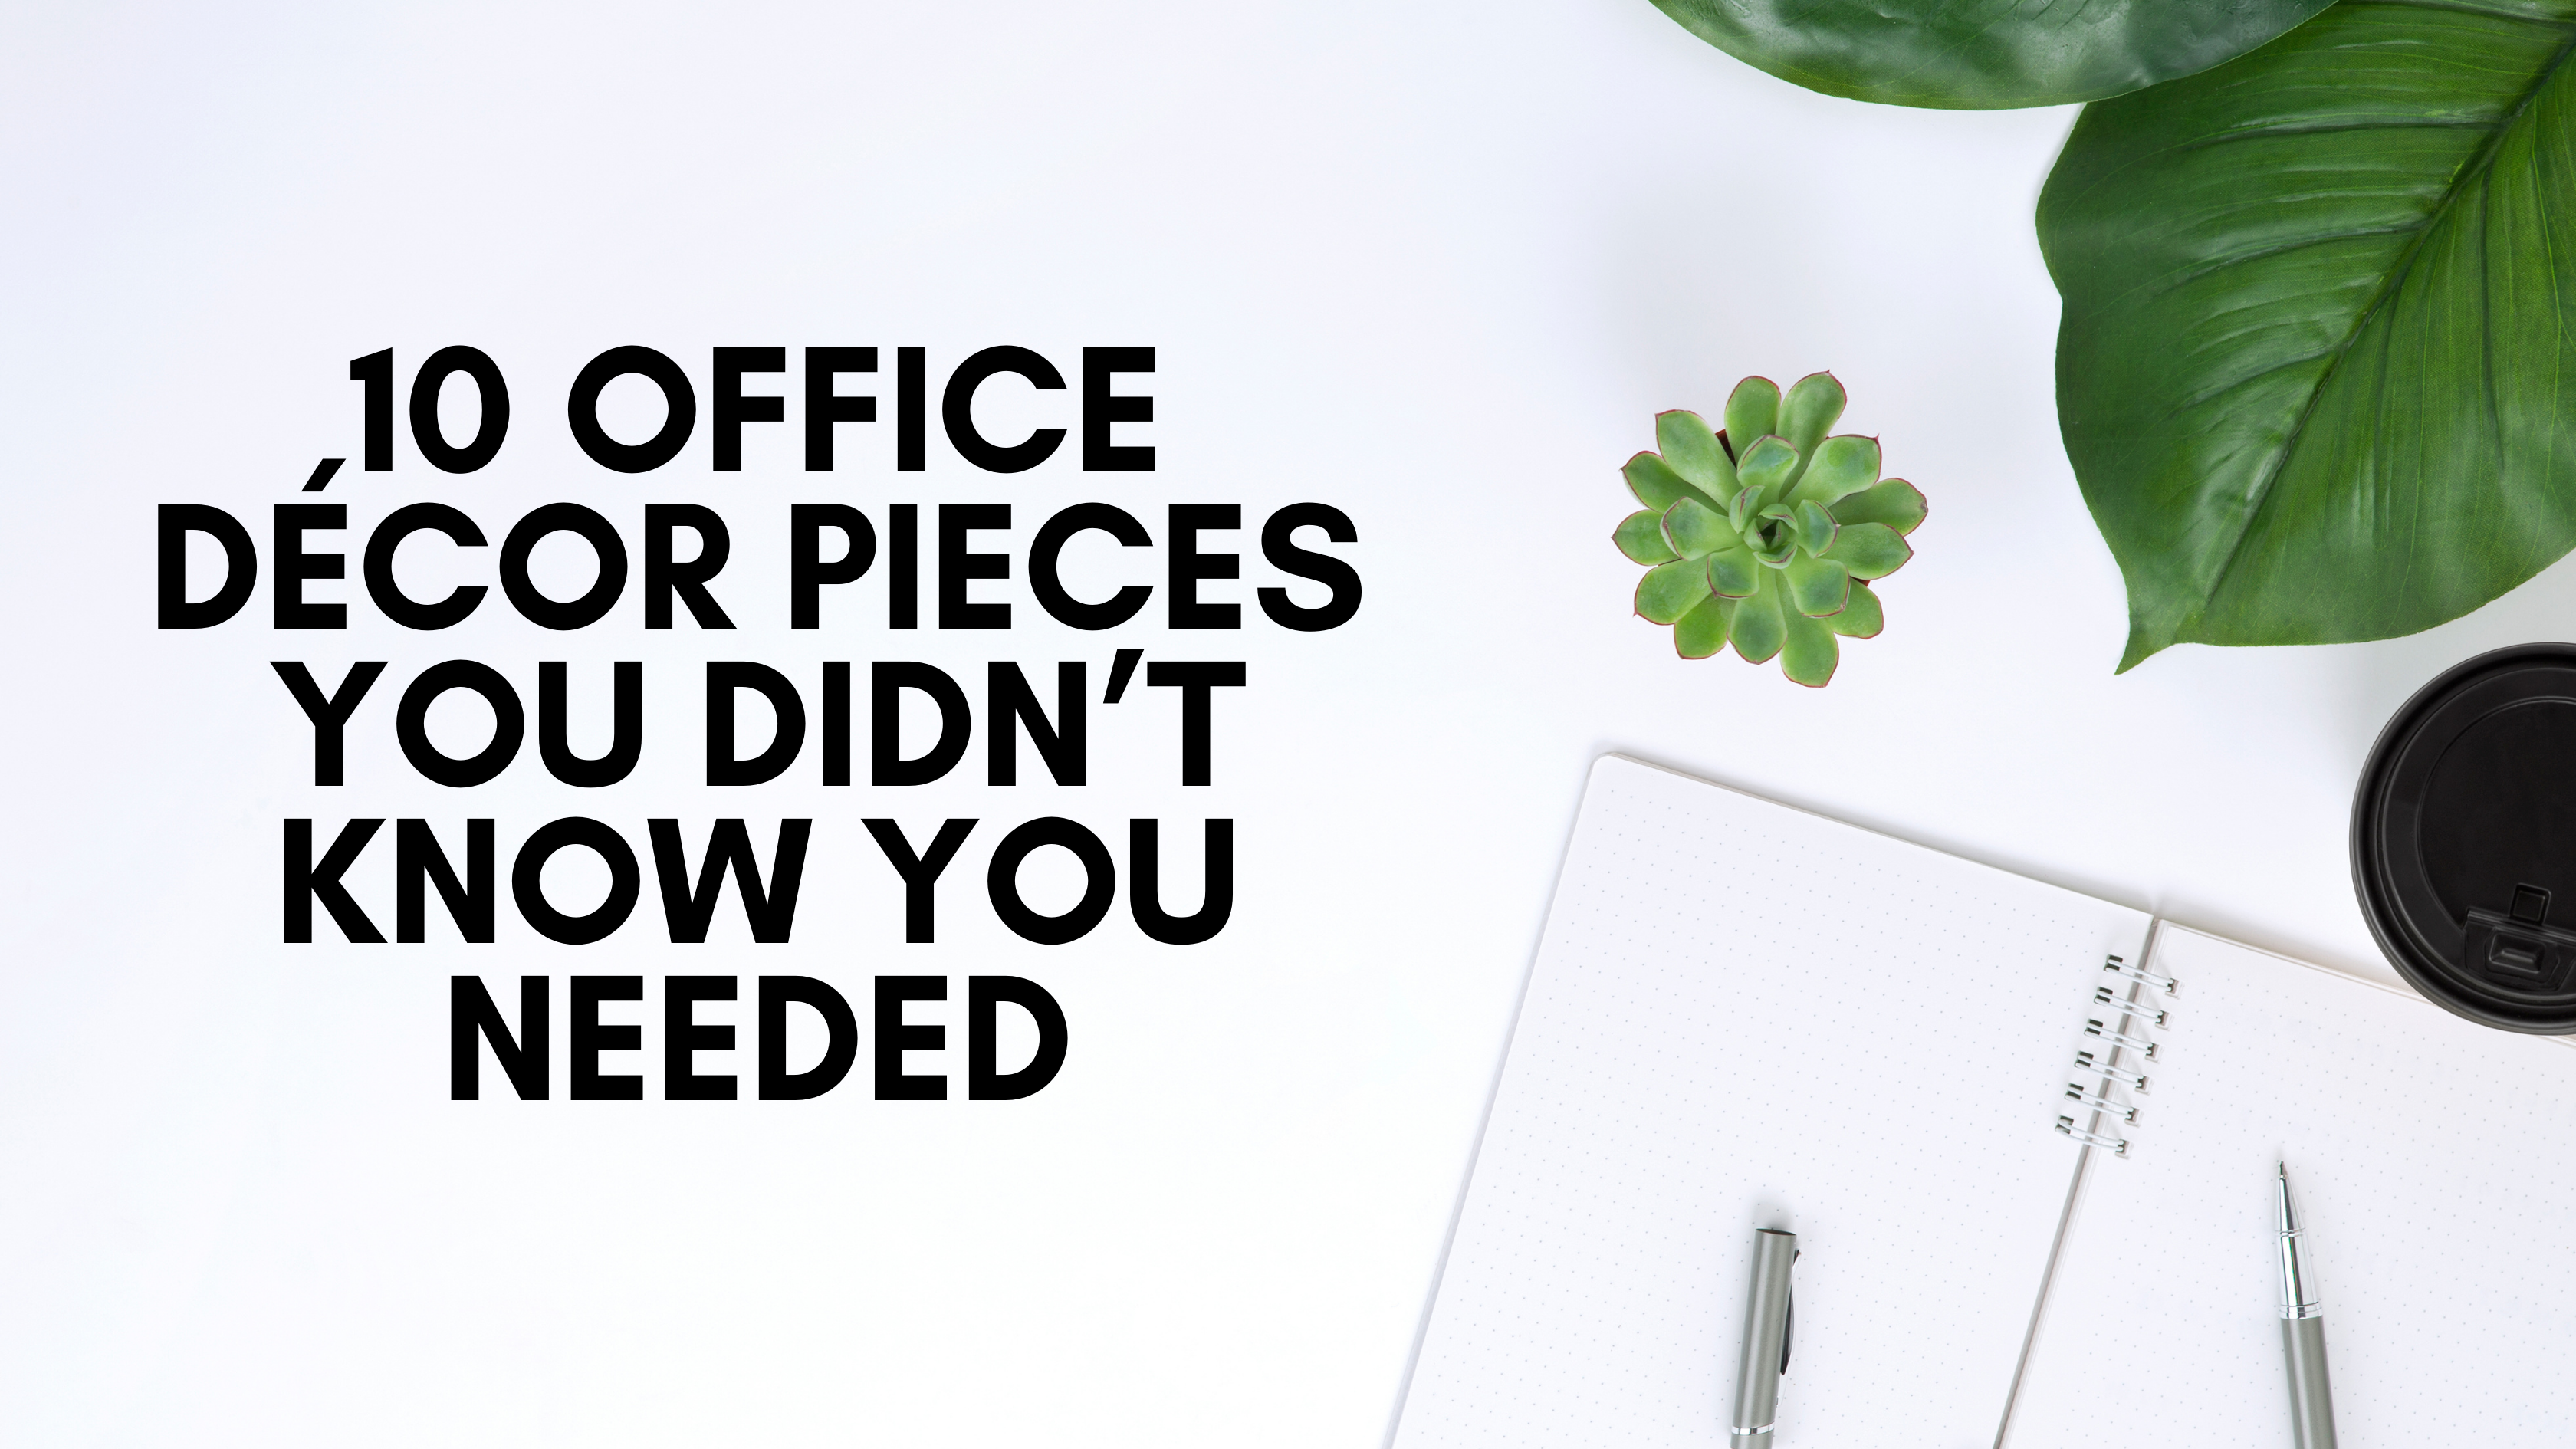 Office Décor Pieces You Didn't Know You Needed